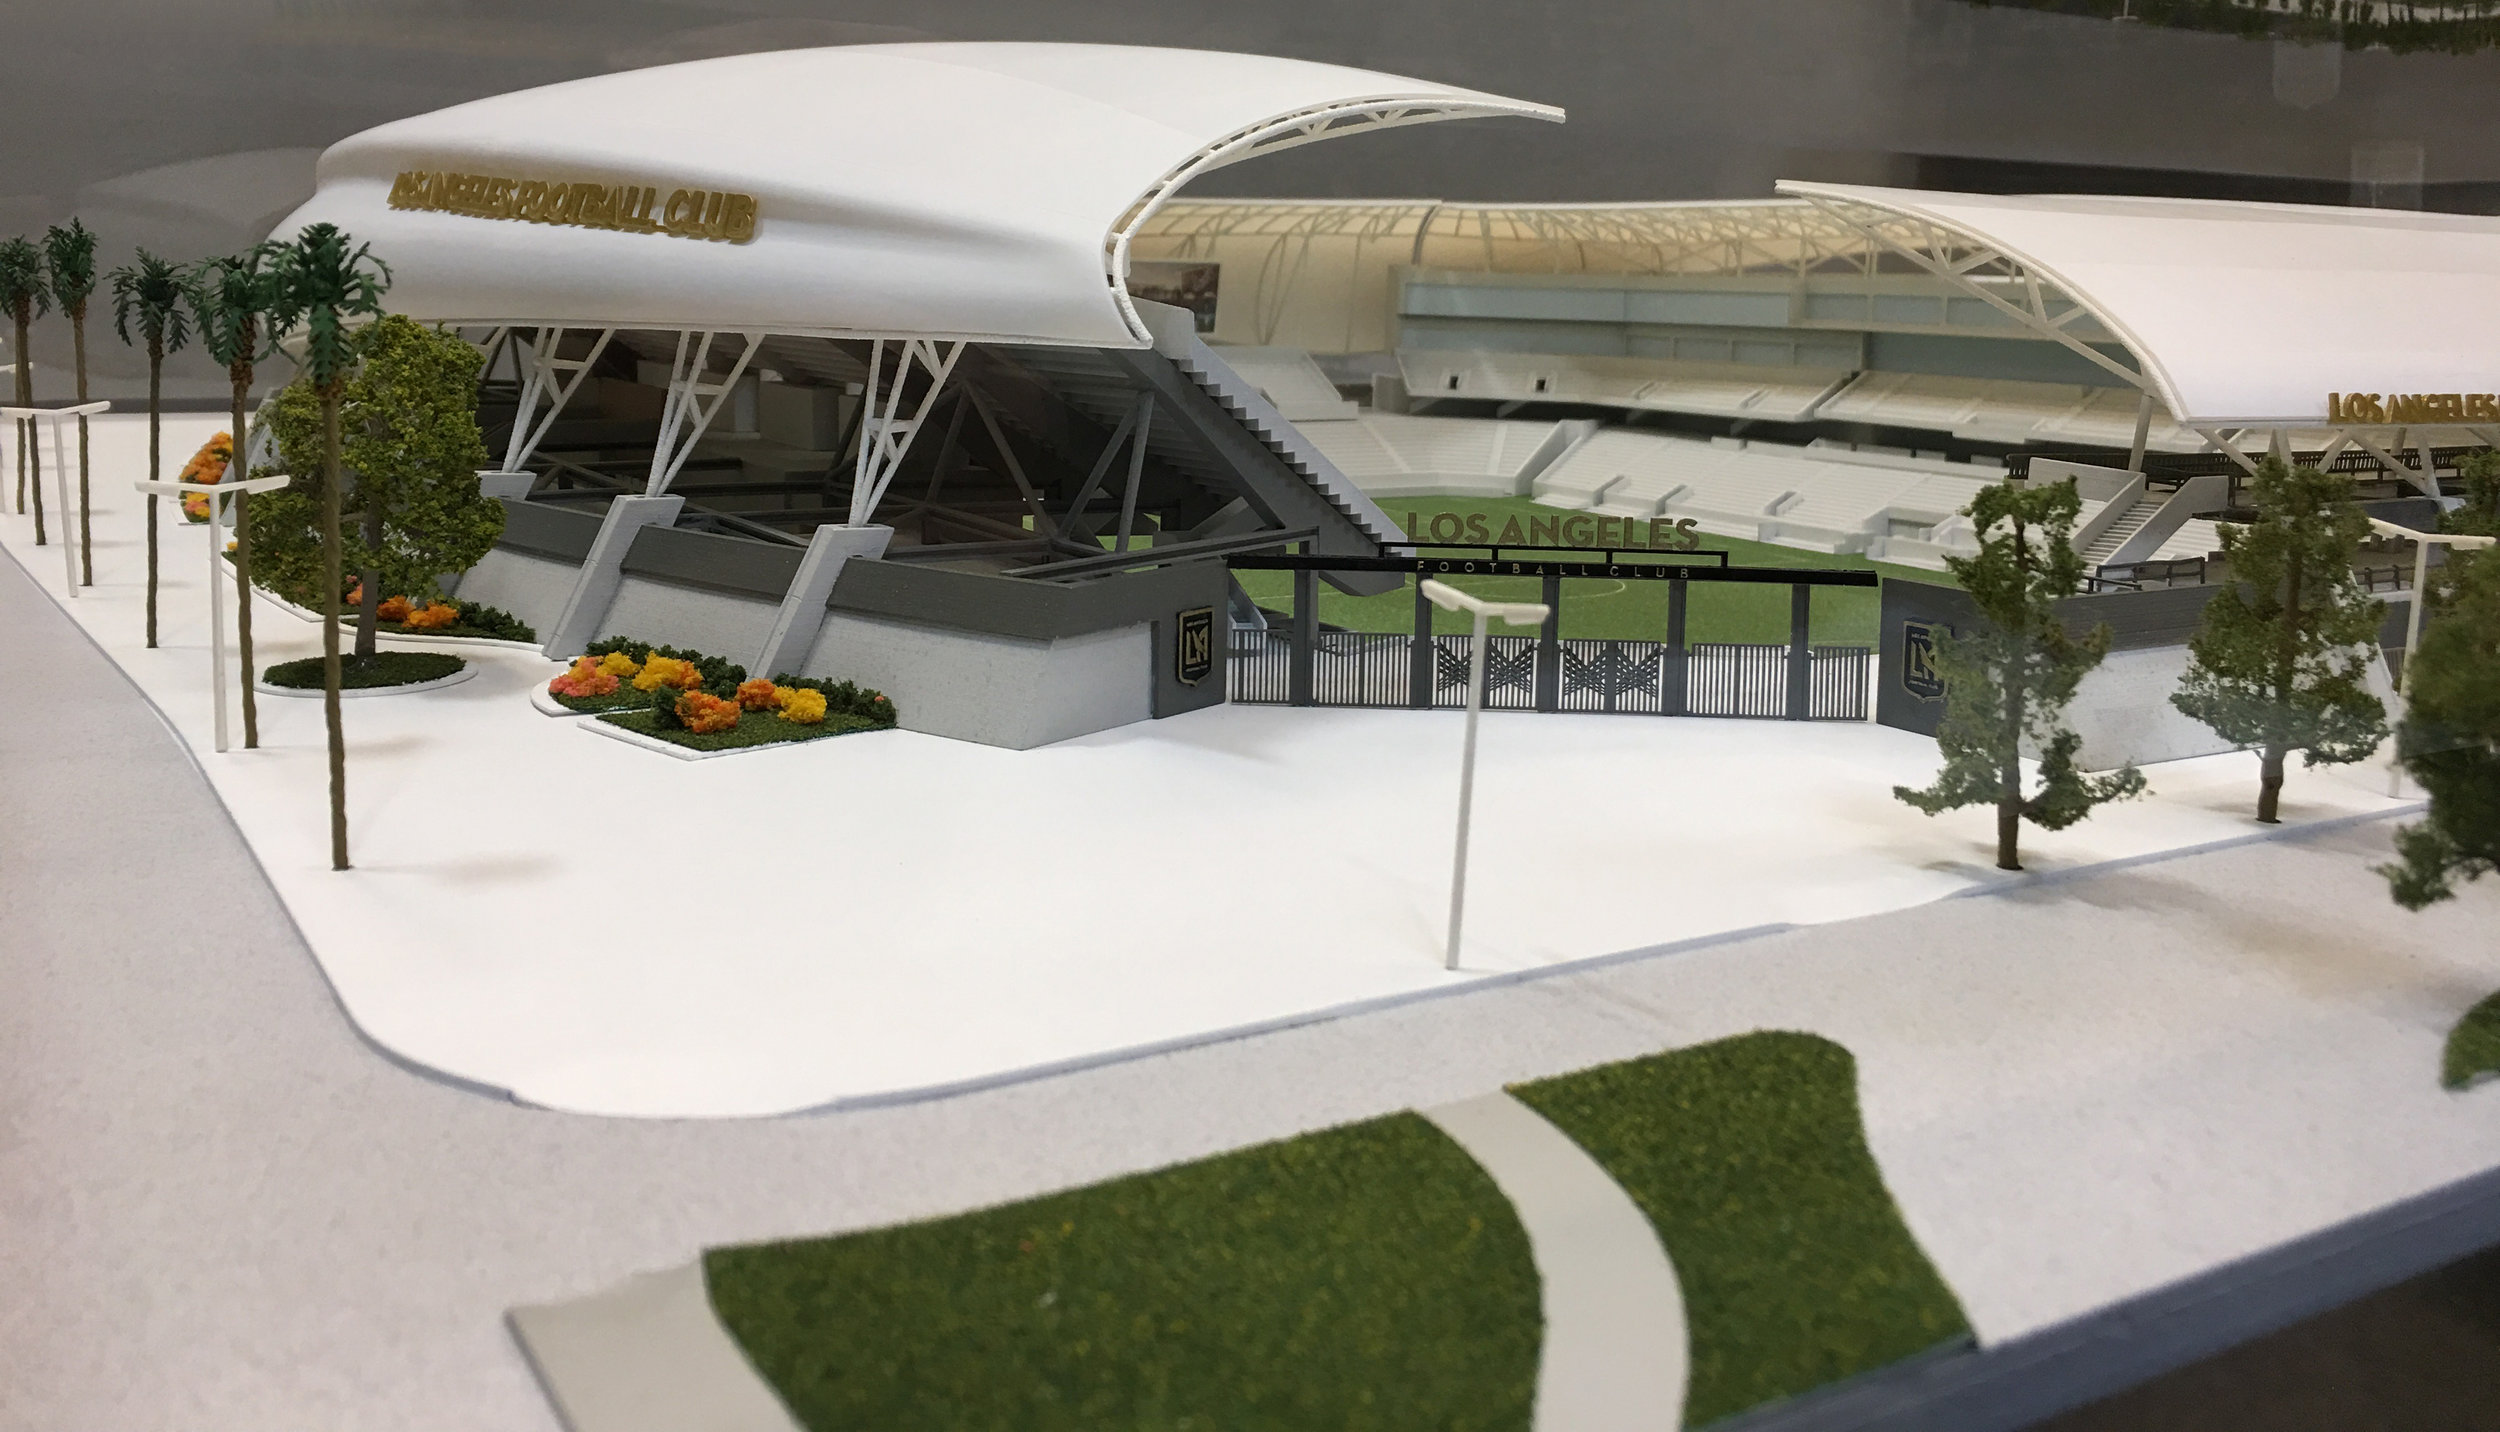 LAFC Banc of California Stadium - Scaled Architectural Model